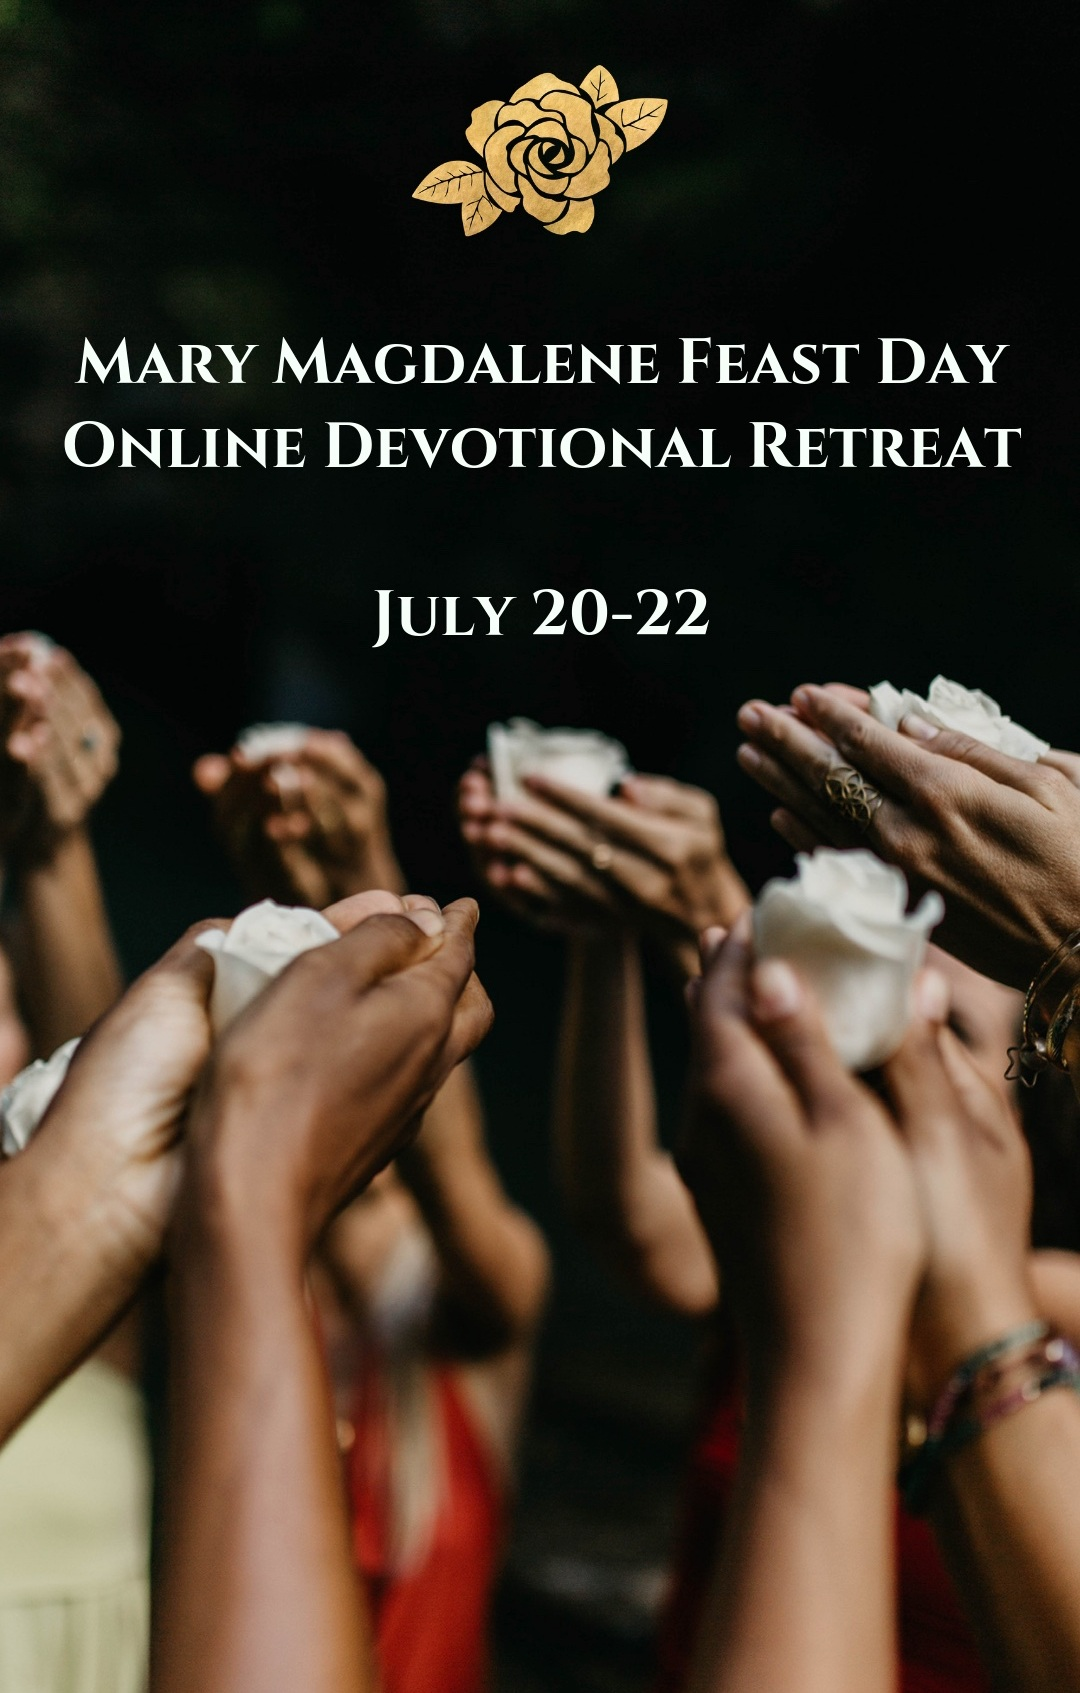 Mary+Magdalene+Feast+Day+Online+Devotional+Retreat++July+20-22.jpg